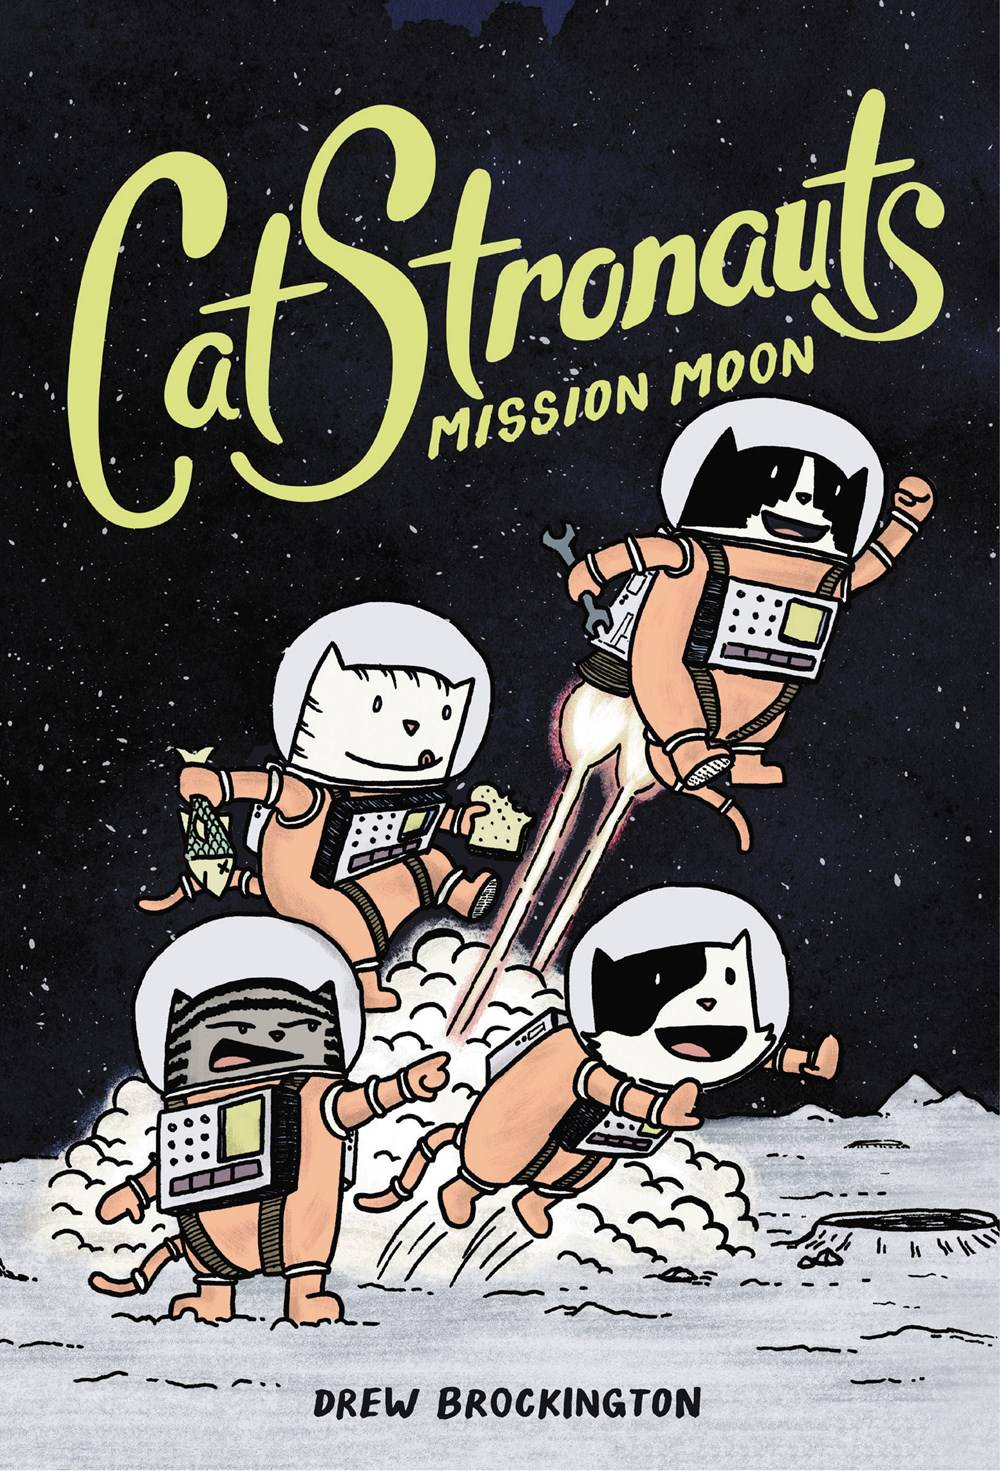 CATSTRONAUTS YR GN 1 MISSION MOON.jpg